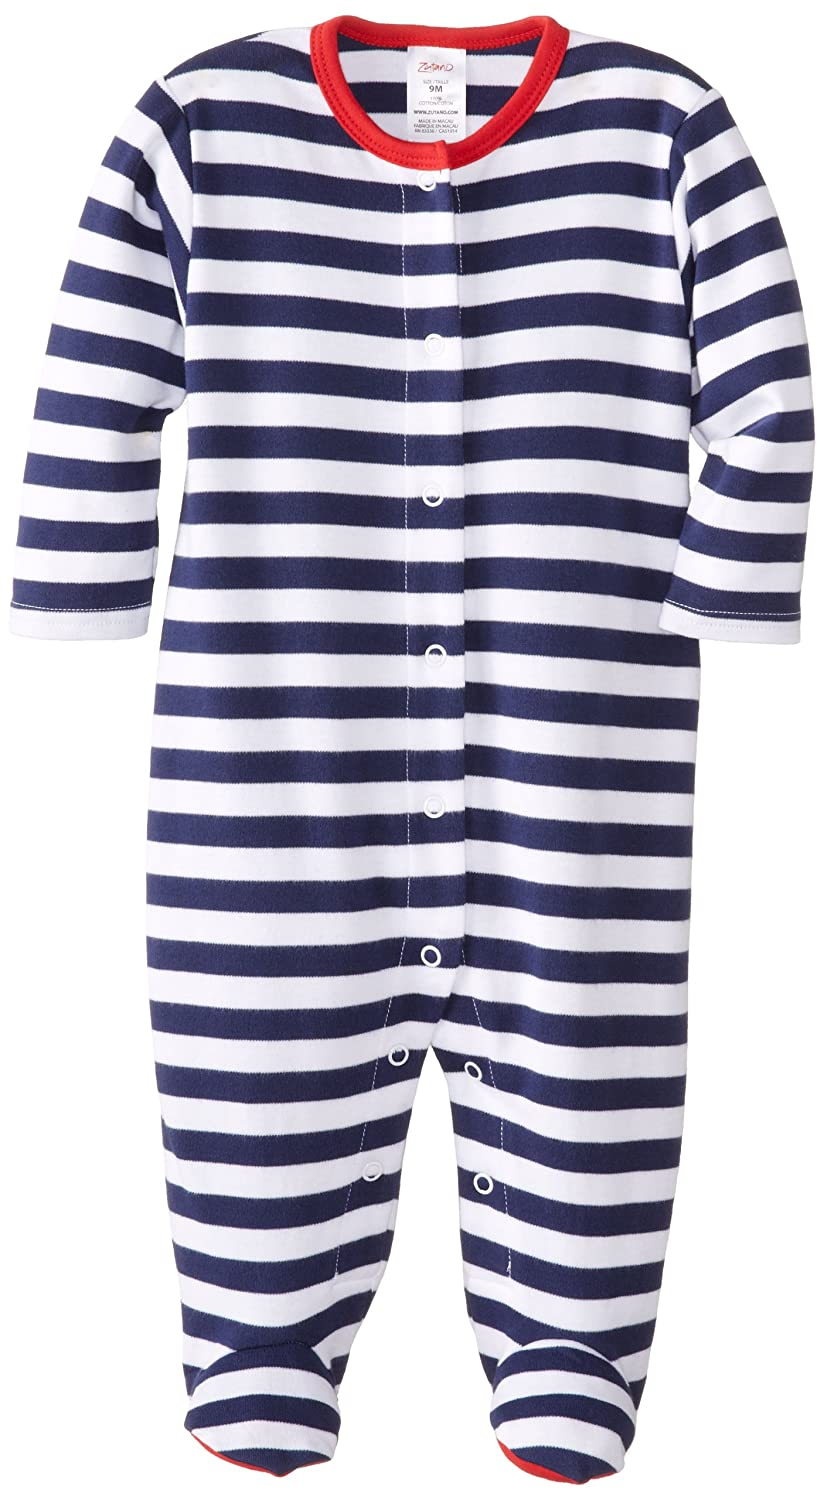 Zutano Unisex-Baby Newborn Primary Stripe Footie newborn baby boy girl infant warm cotton outfit jumpsuit romper bodysuit clothes